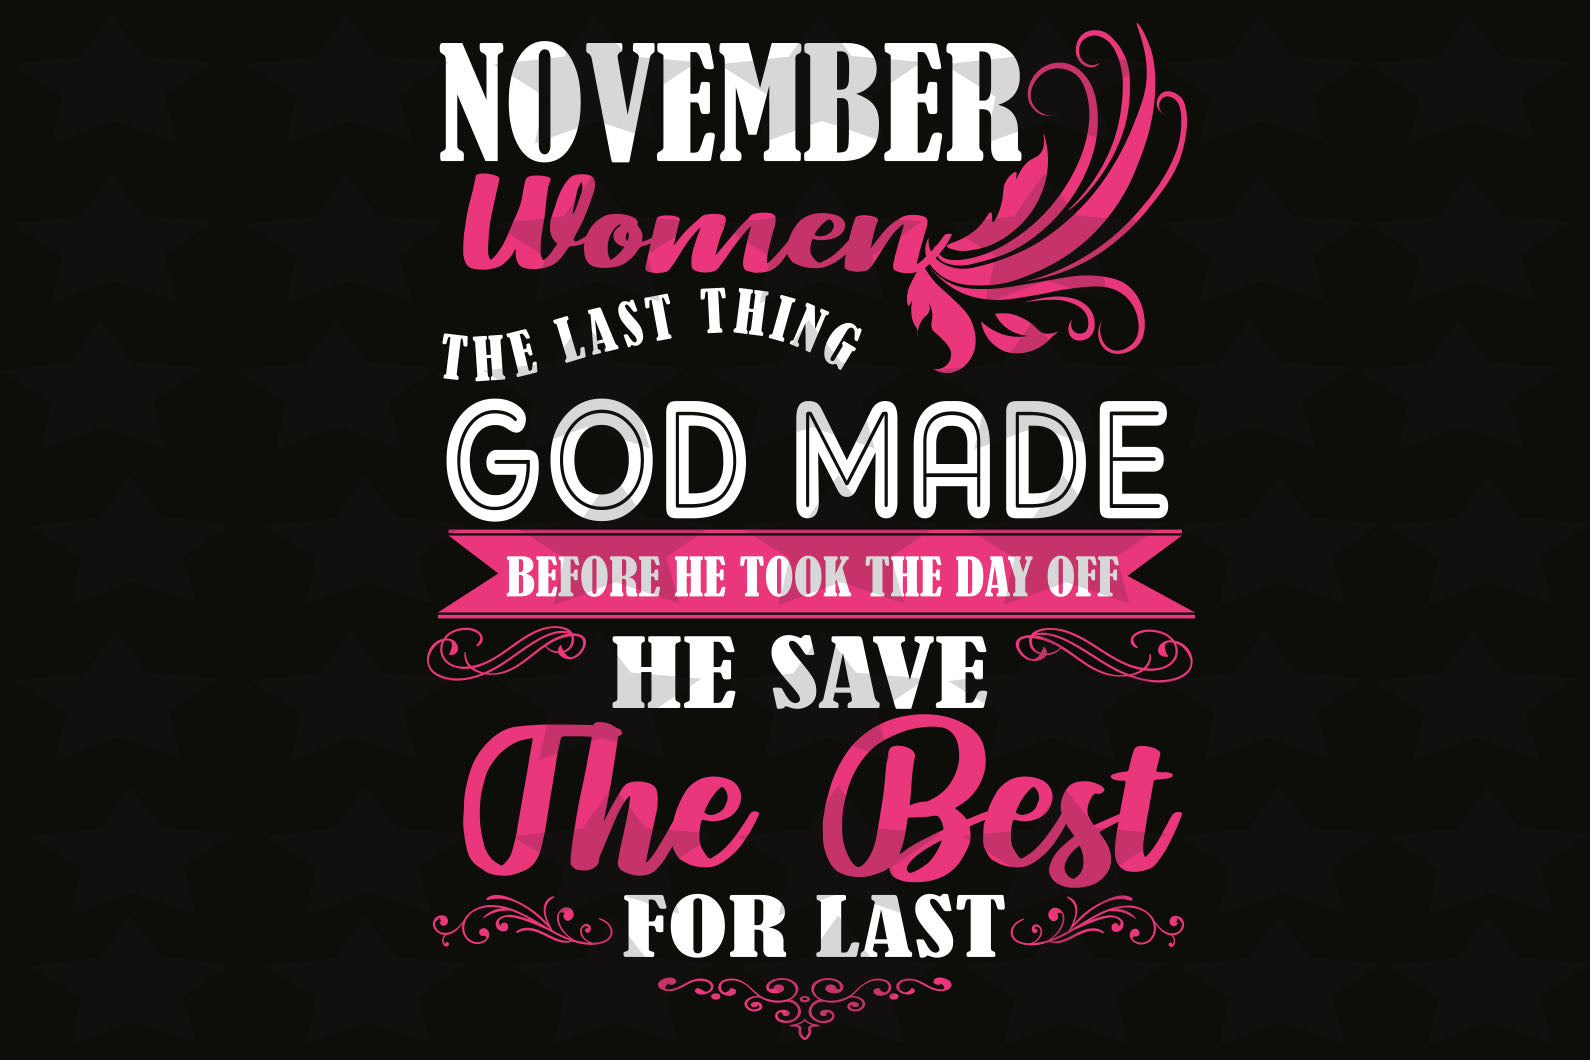 November women the last thing god made, born in November, November svg, November birthday party, birthday gift, birthday shirt, birthday anniversary, gift for women, gift from bestie, gift from family, digital file, vinyl for cricut,